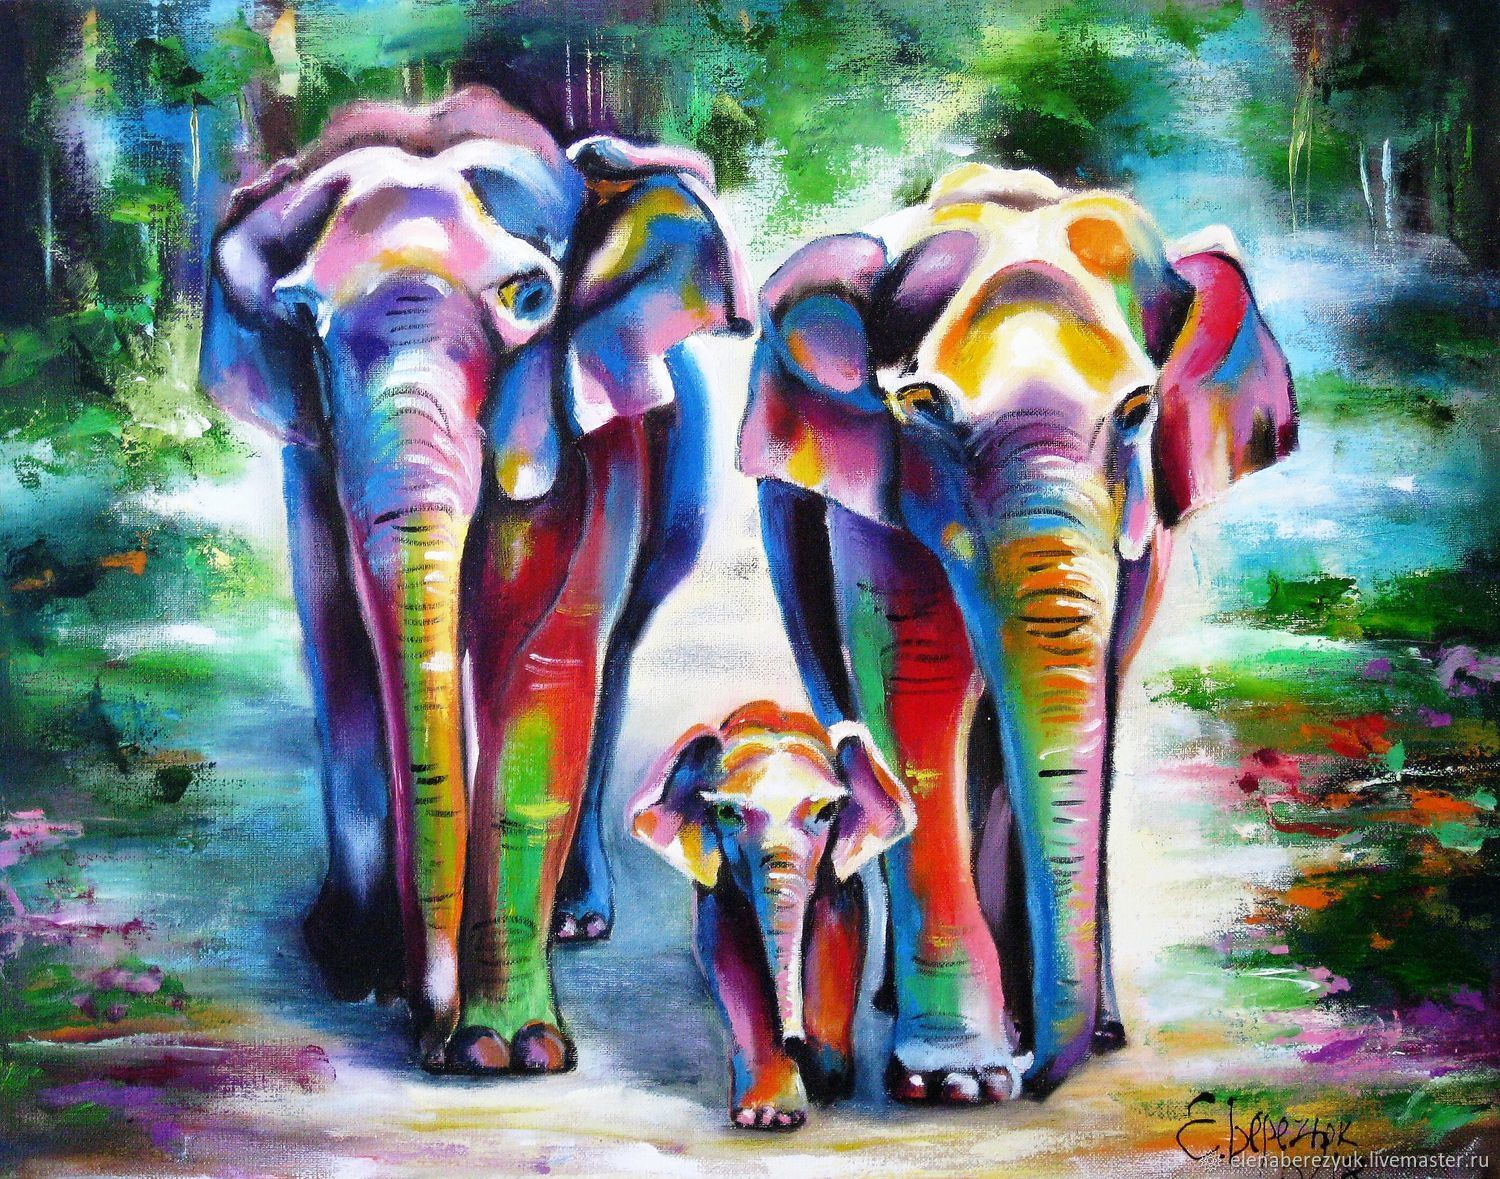 Elephans Landscape oil painting on canvas Tropical animal painting   shop online on Livemaster with shipping is part of Shop Online On Livemaster With Shipping Pinterest Com - Elephans Landscape oil painting on canvas Tropical animal painting  buy or order in an online shop on Livemaster   Elephans family  Landscape oil painting on…